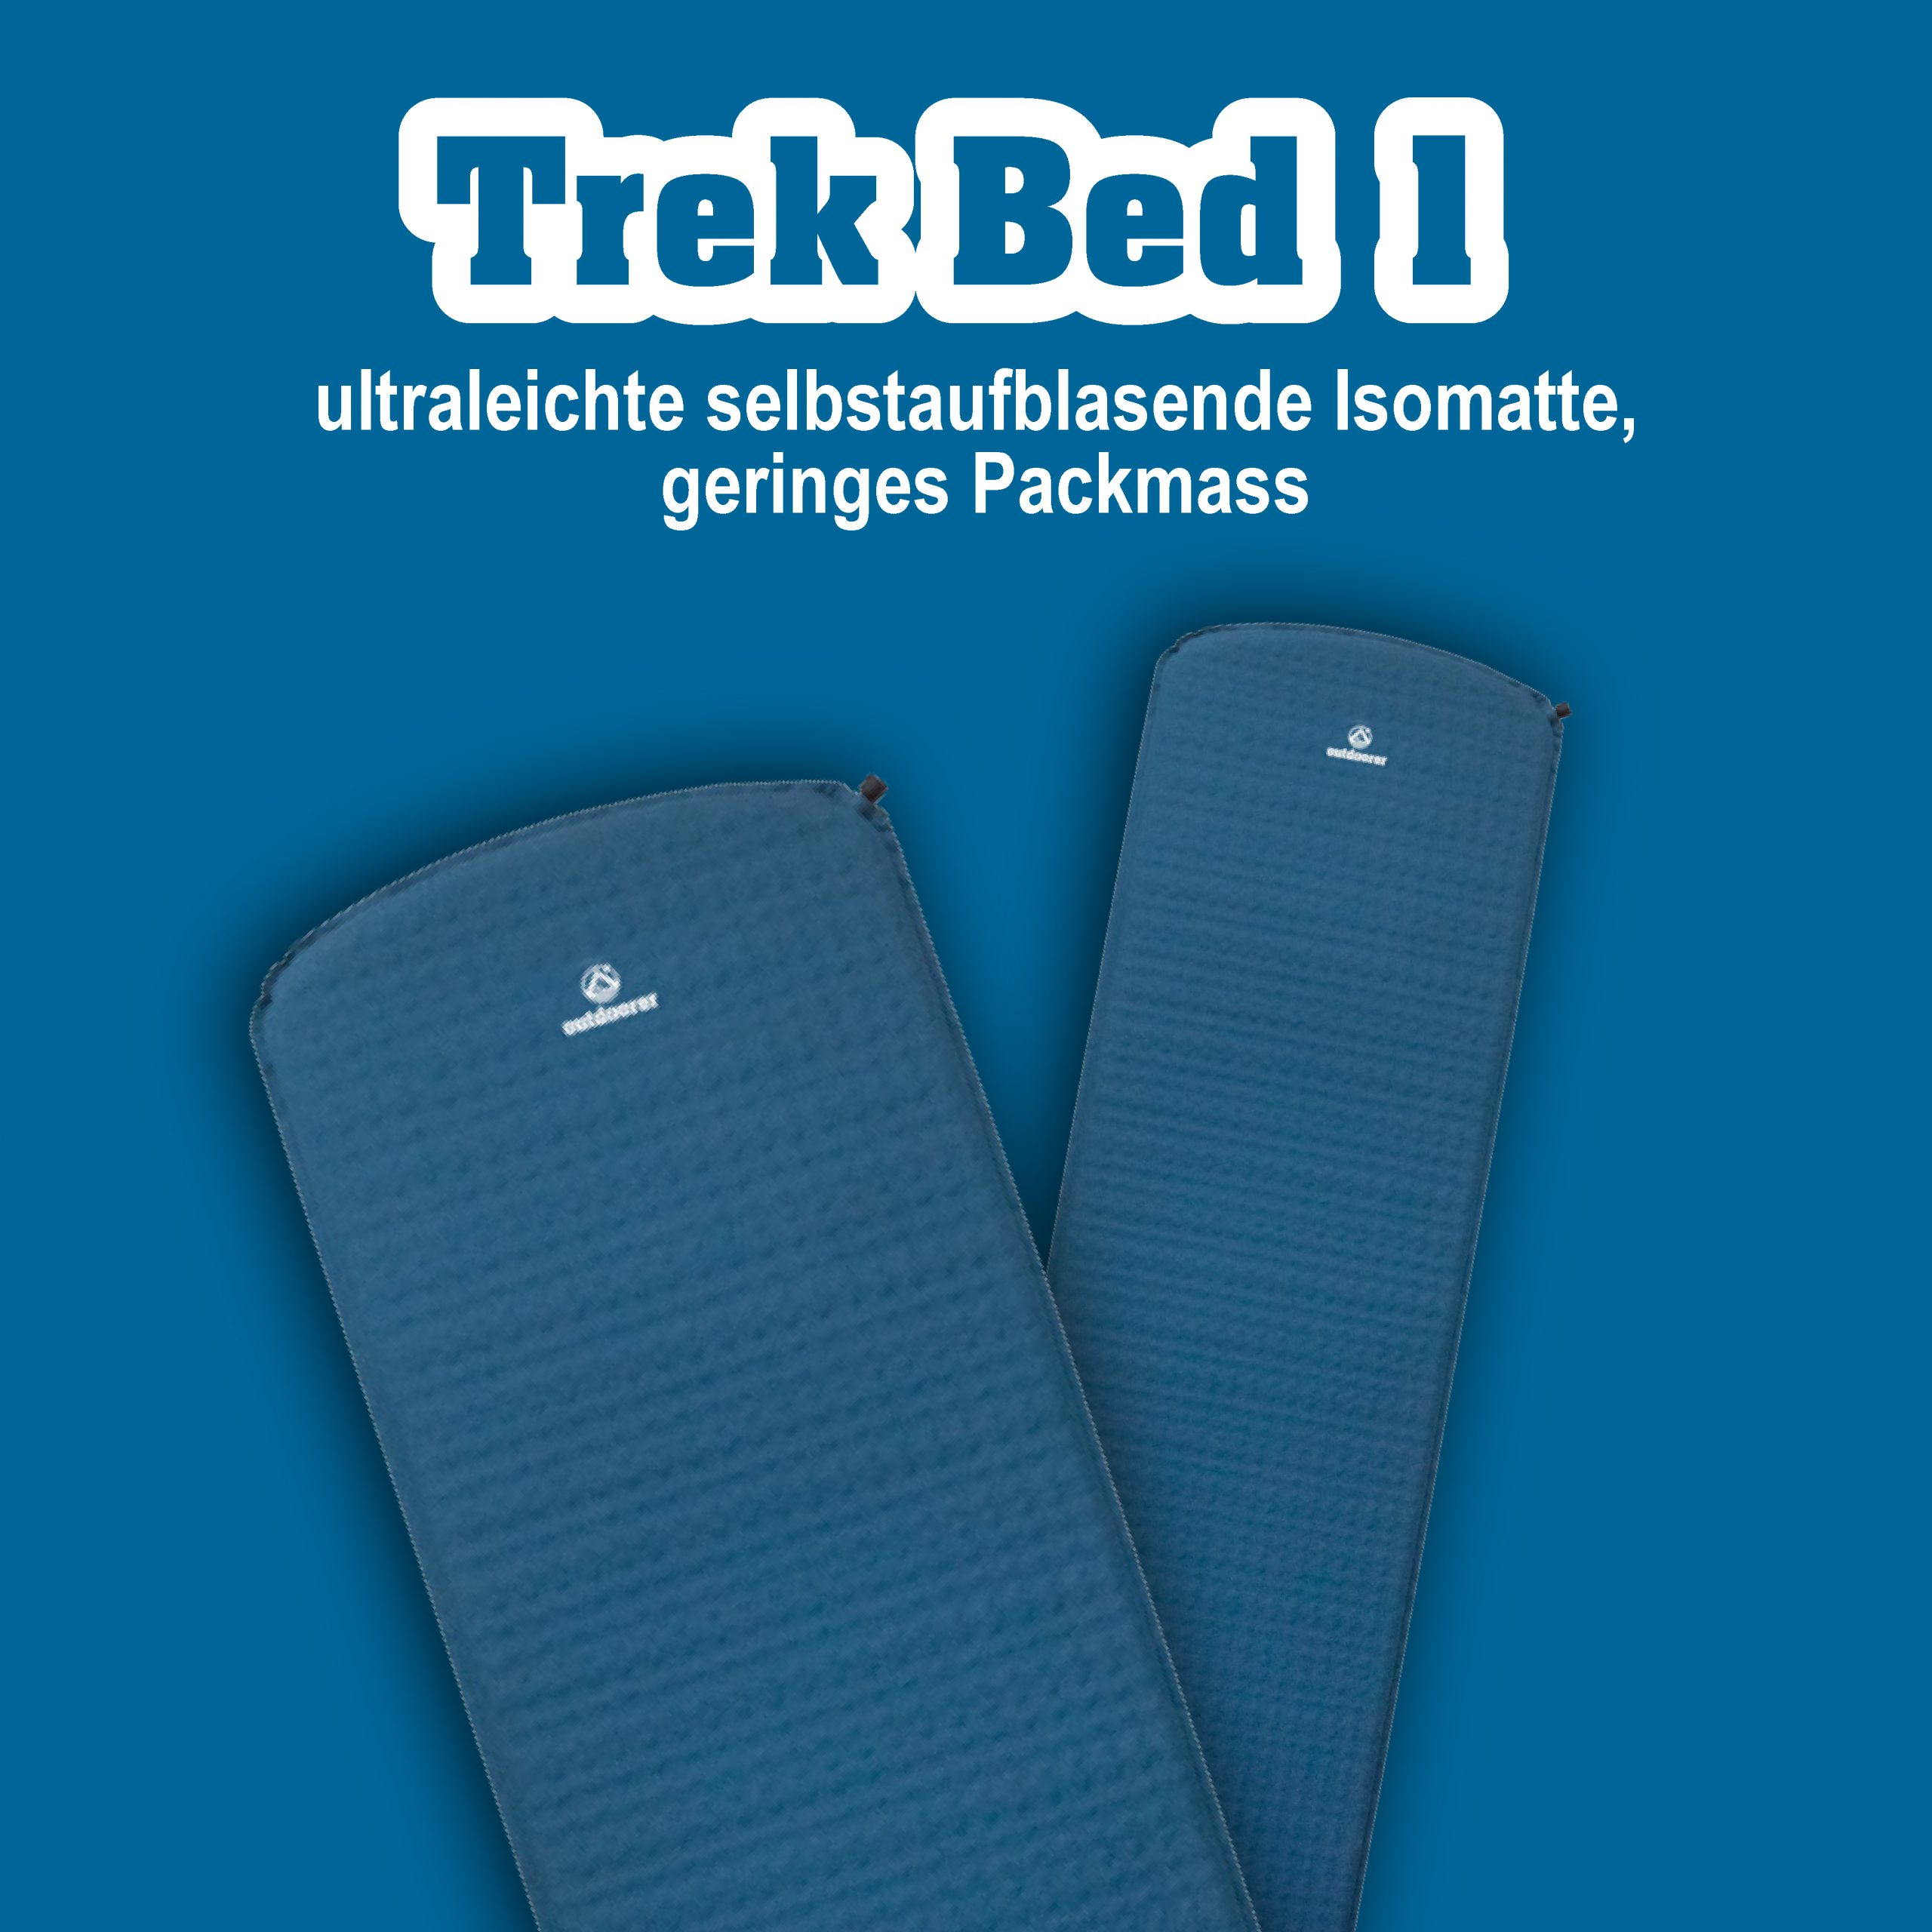 Trek Bed 1 outdoorer Isomatte selbstaufblasend